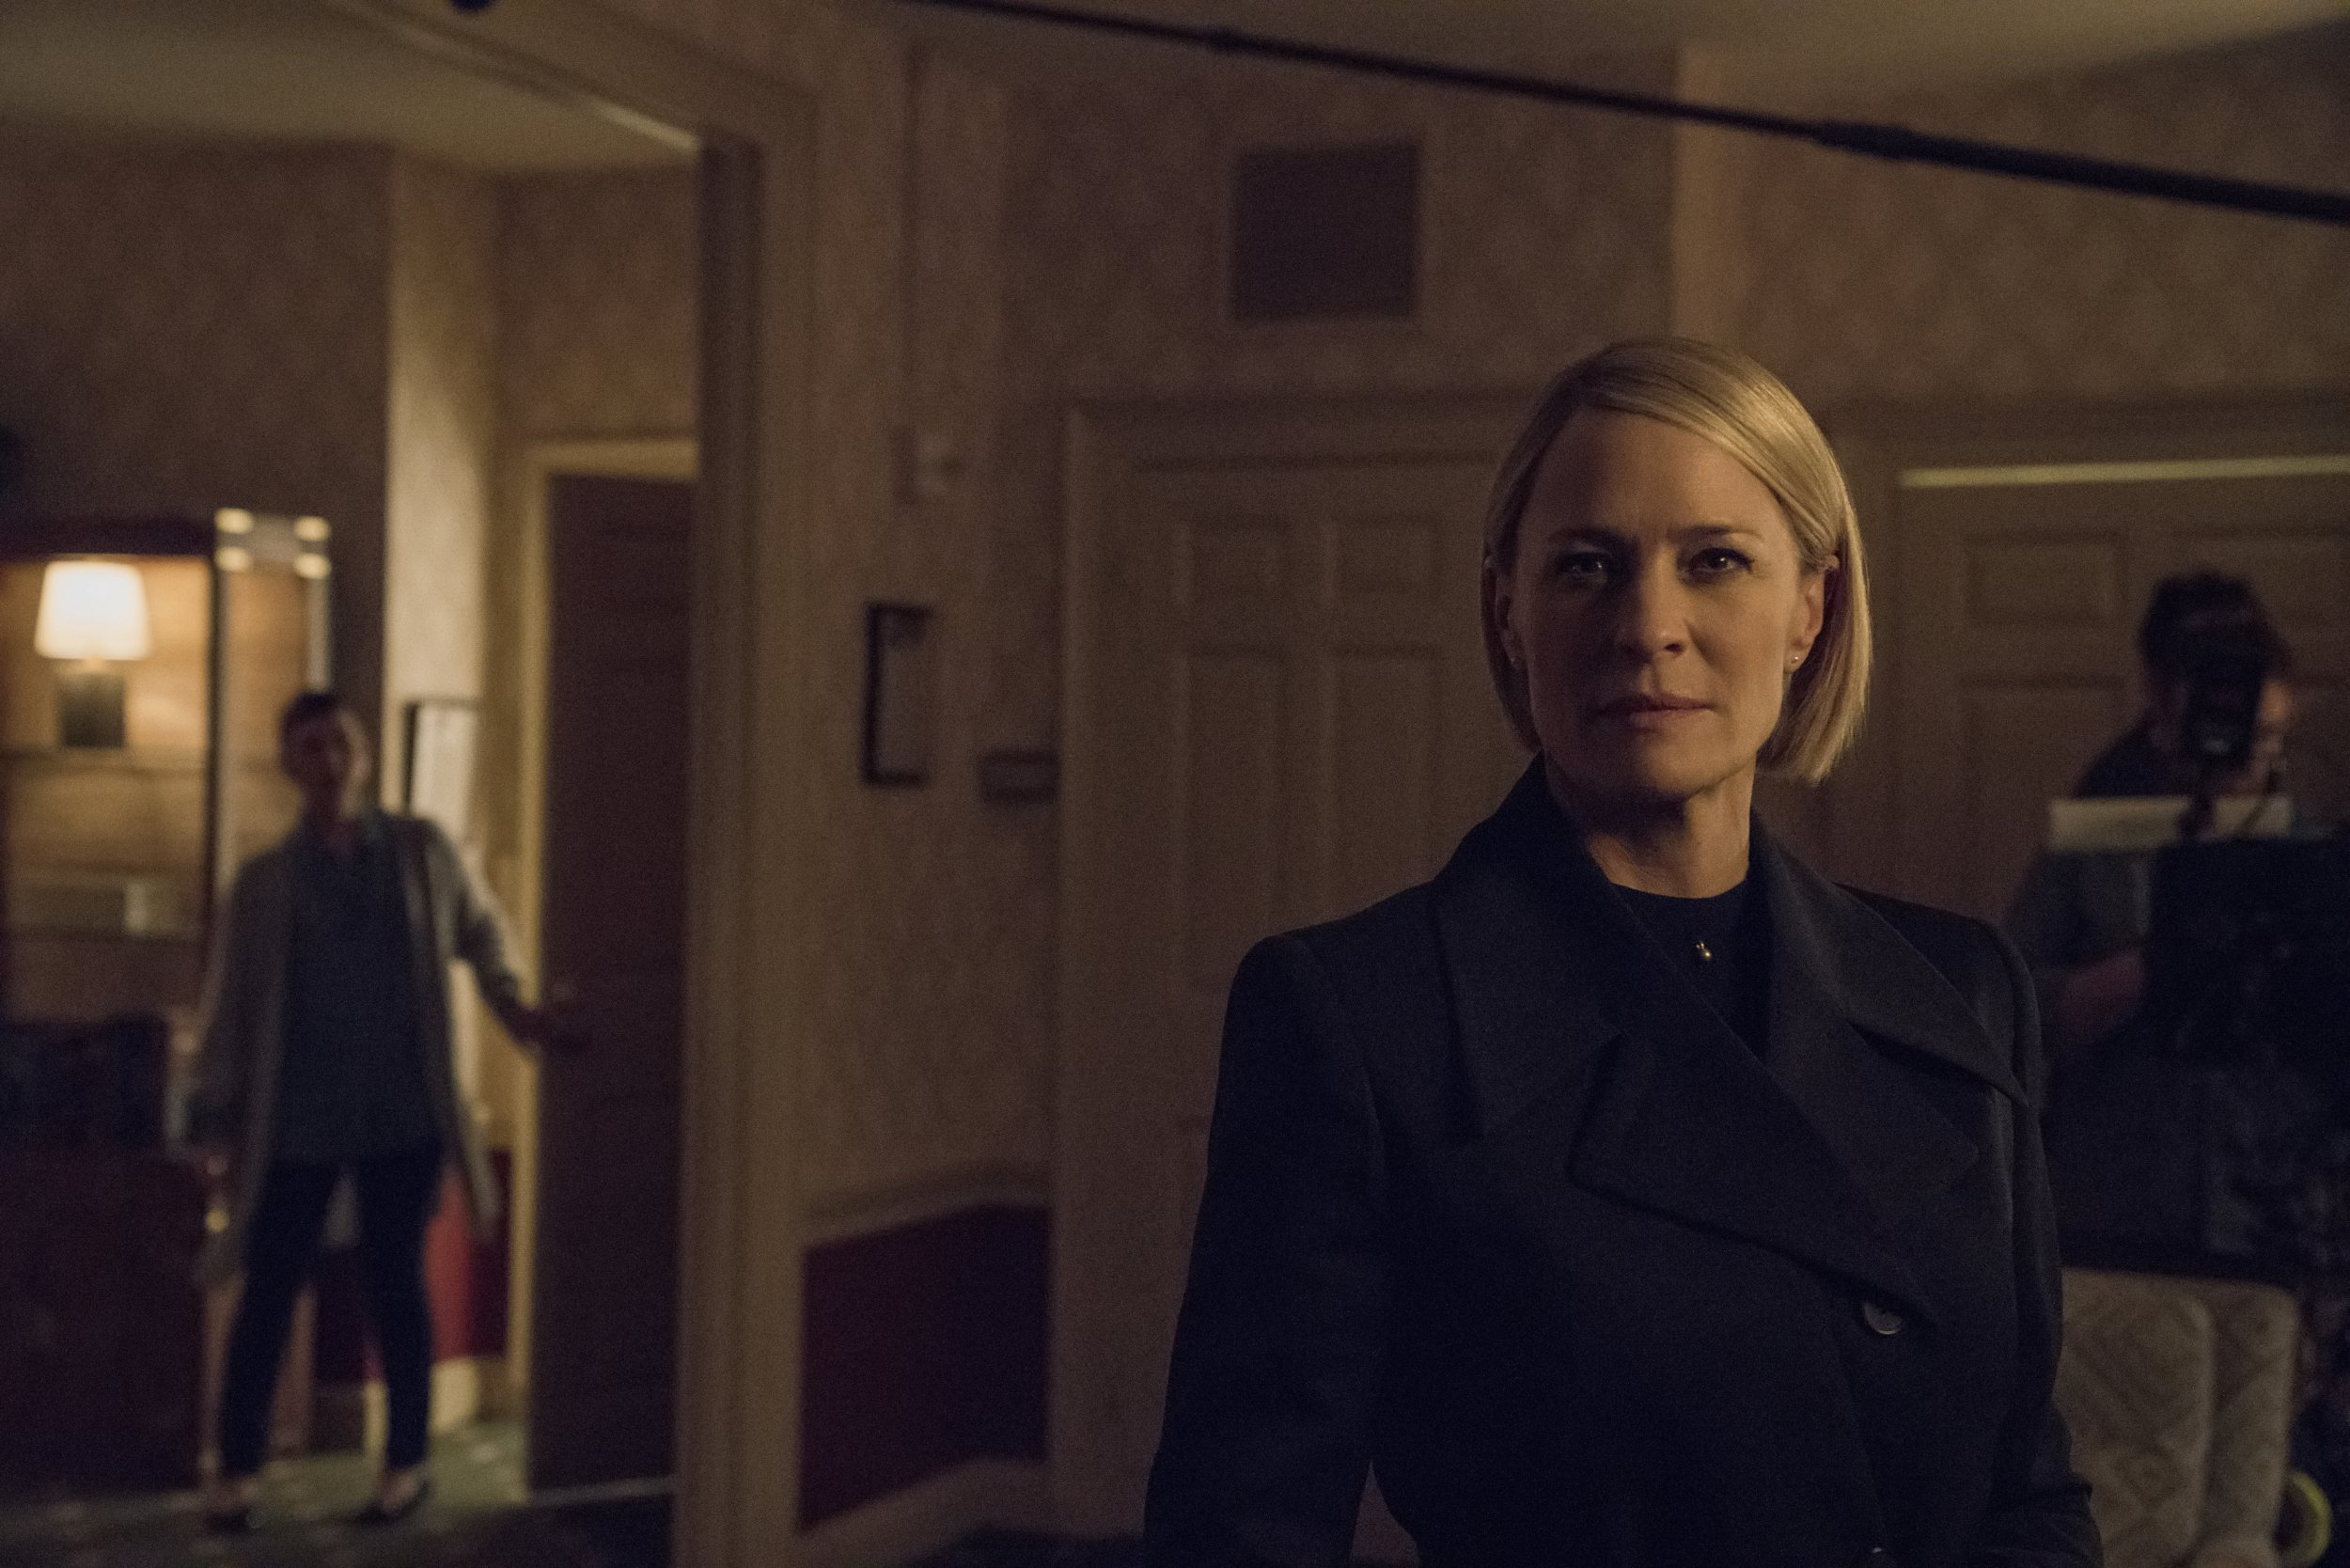 No sign of Kevin Spacey as Netflix drop first look at Claire Underwood in House Of Cards